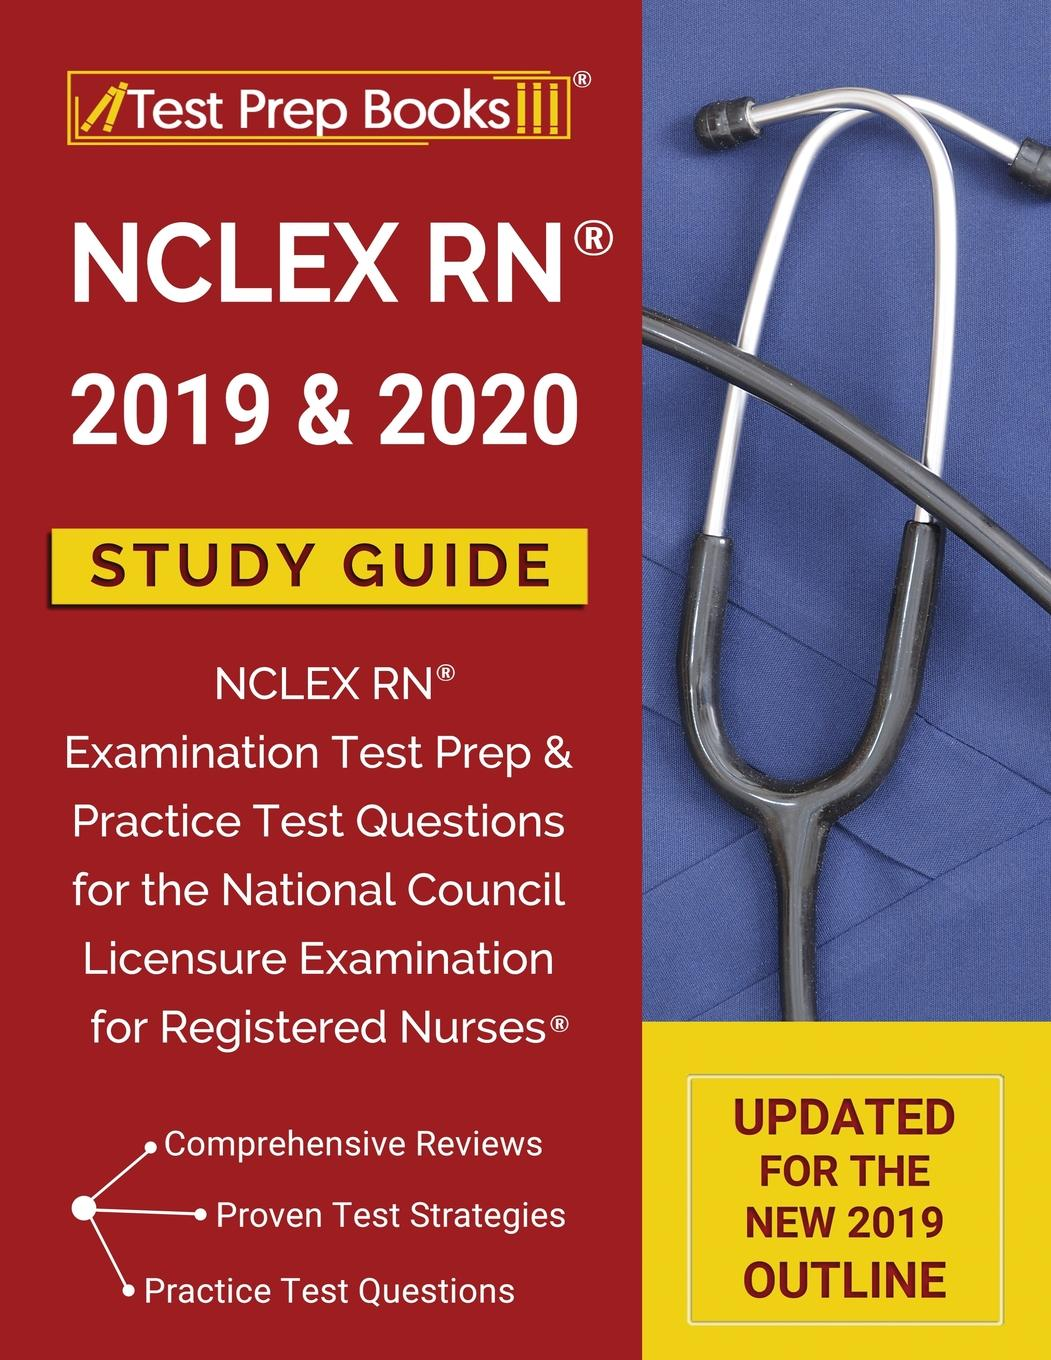 NCLEX RN 2019 2020 Study Guide NCLEX RN Examination Test Prep Practice Test Questions For The National Council Licensure Examination For